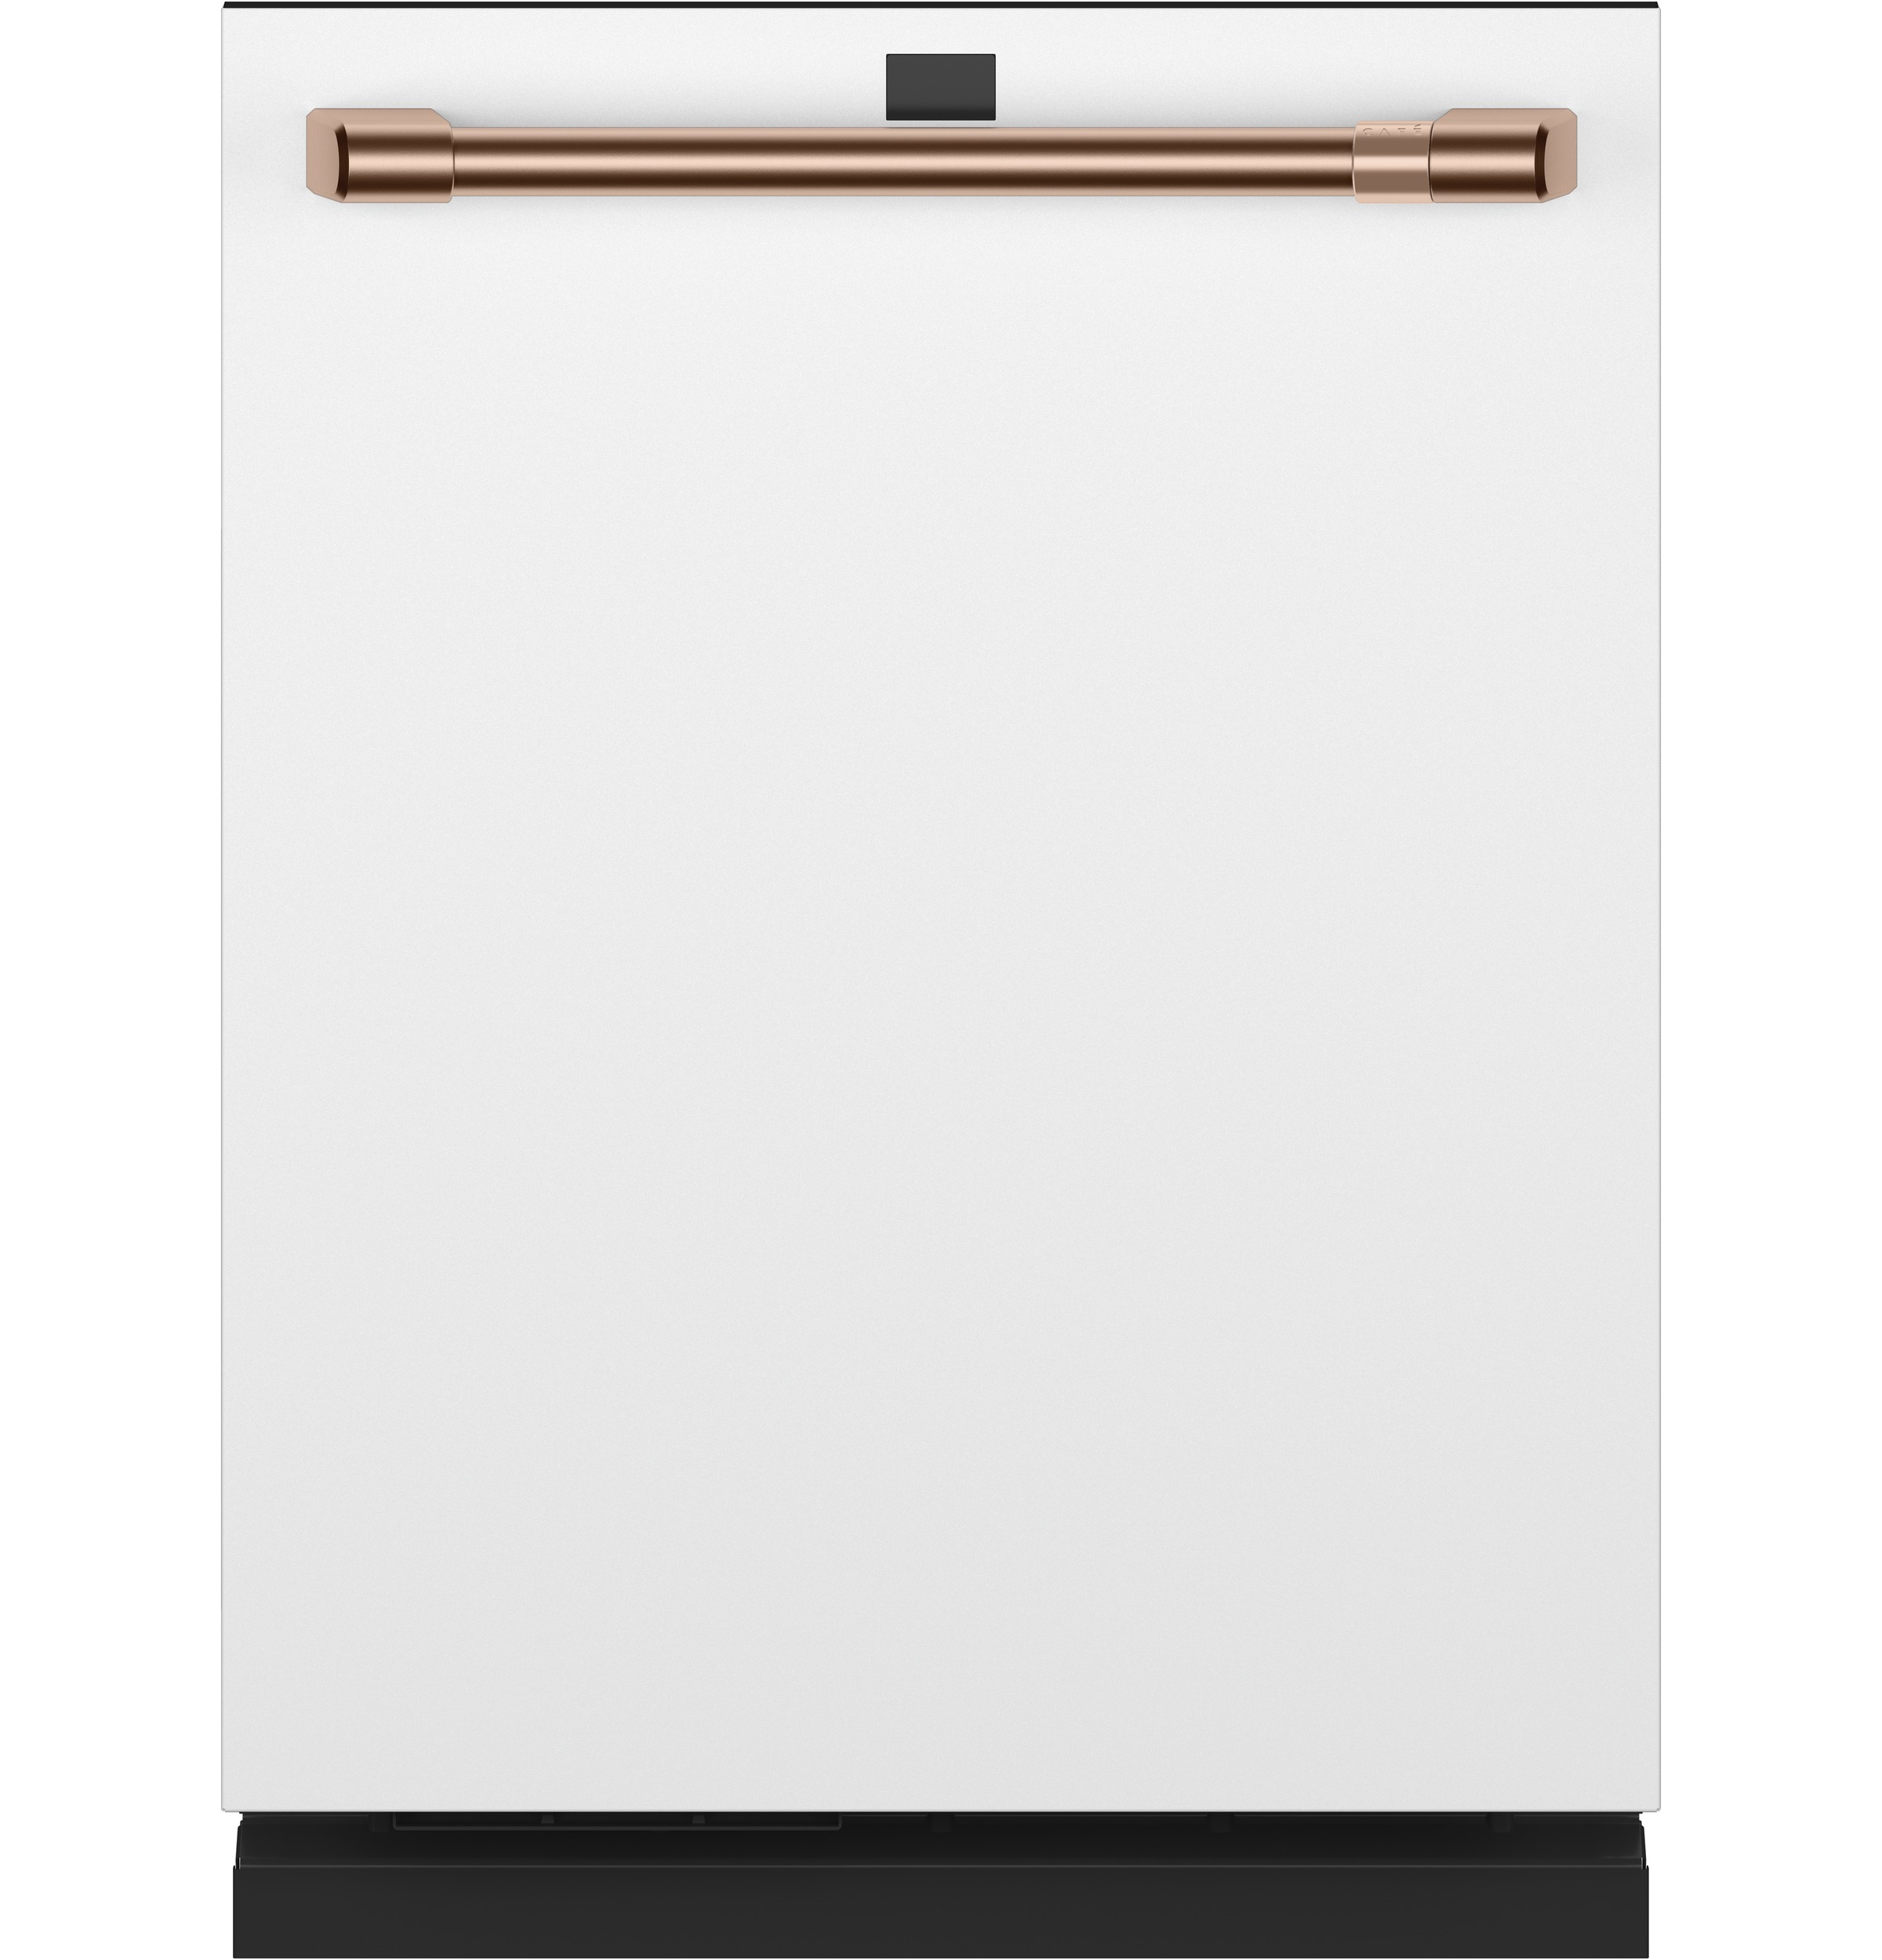 Model: CDT875P4NW2 | Cafe Café™ Smart Stainless Steel Interior Dishwasher with Sanitize and Ultra Wash & Dual Convection Ultra Dry